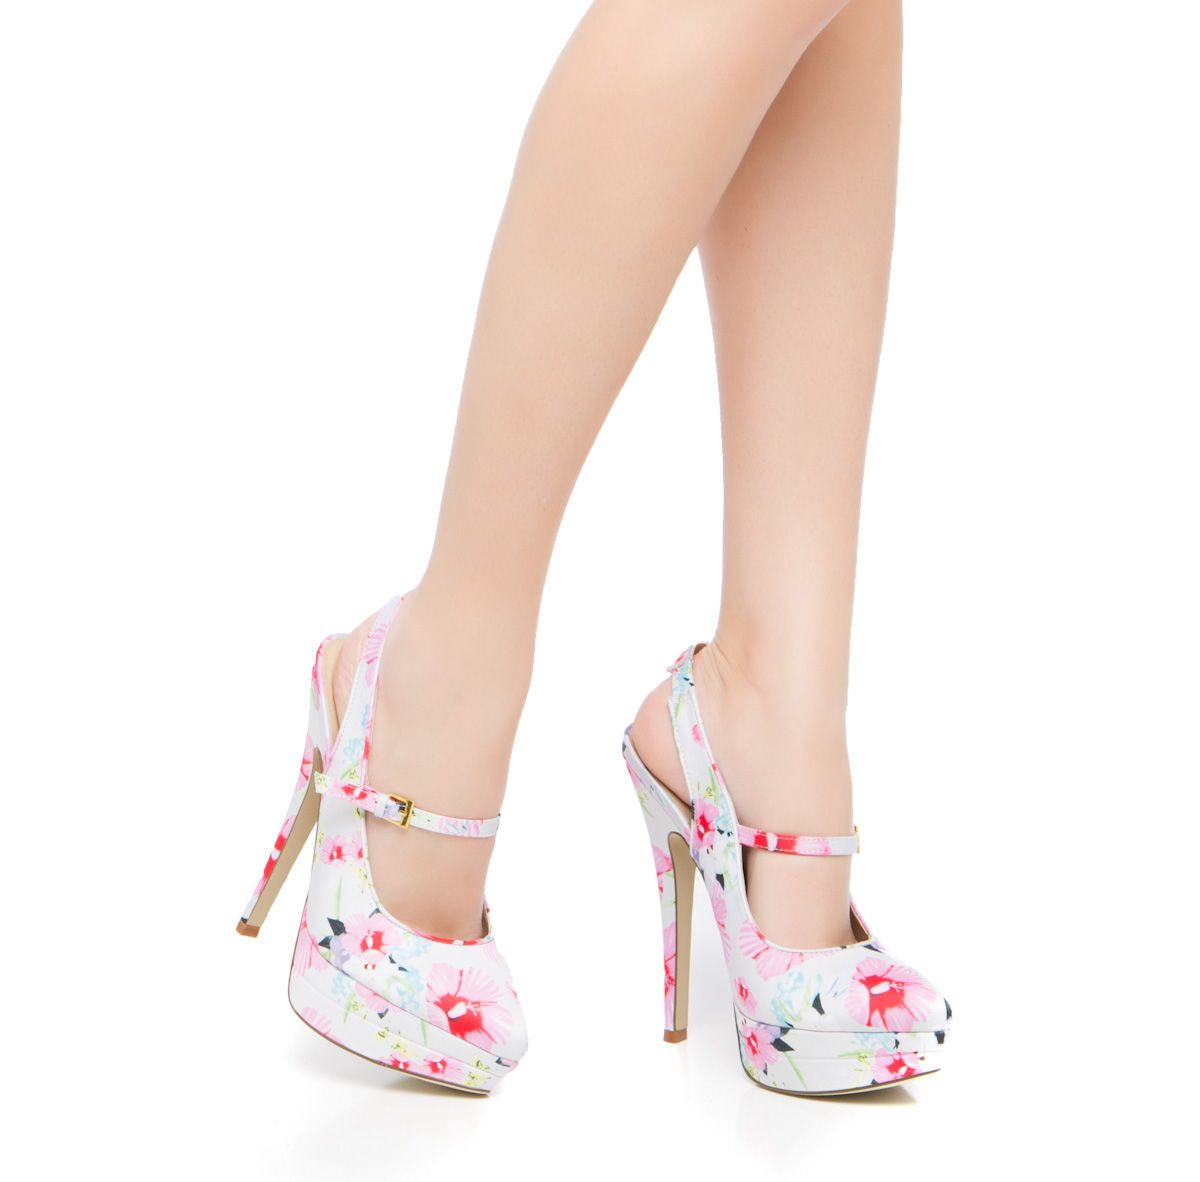 beutiful shoes